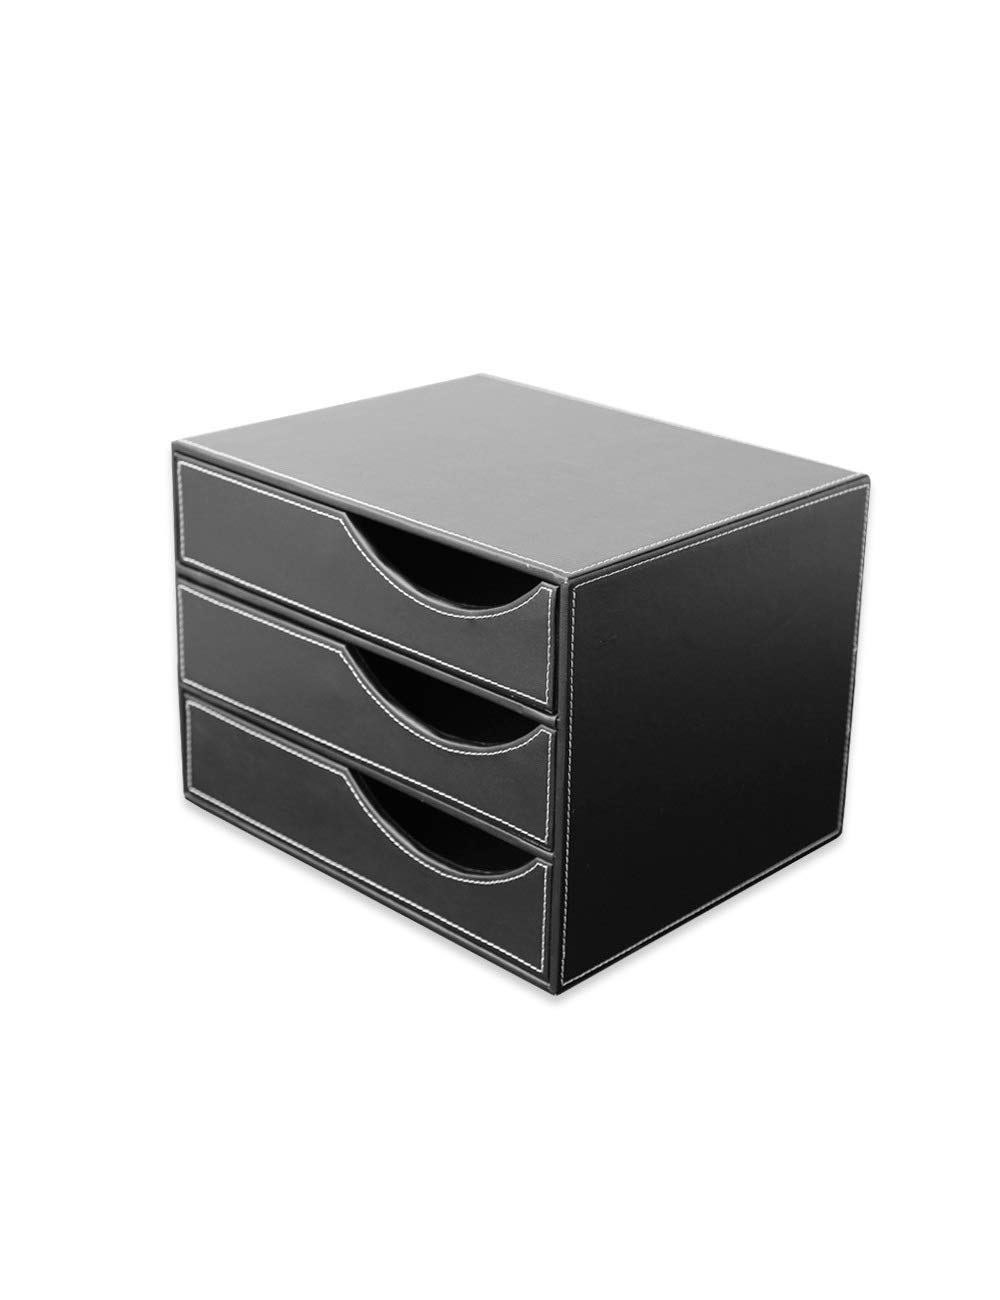 File Cabinet Office Desktop Drawer Type Stationery Cabinet 3 Layers A4 Cortex Data Cabinet Storage Box Storage Filing cabinets (Color : A)